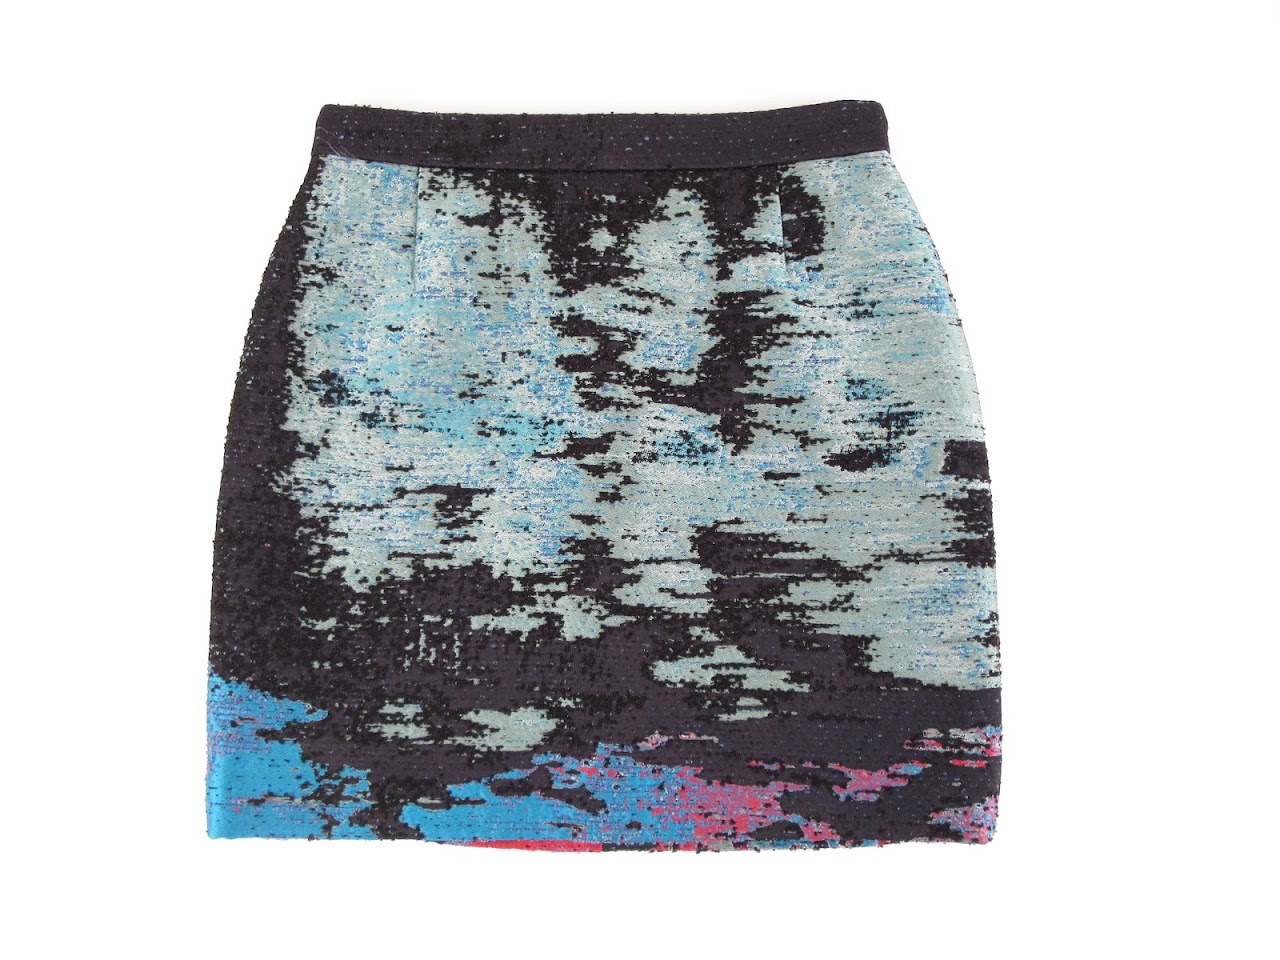 Proenza Schoeler Textured Mini Skirt